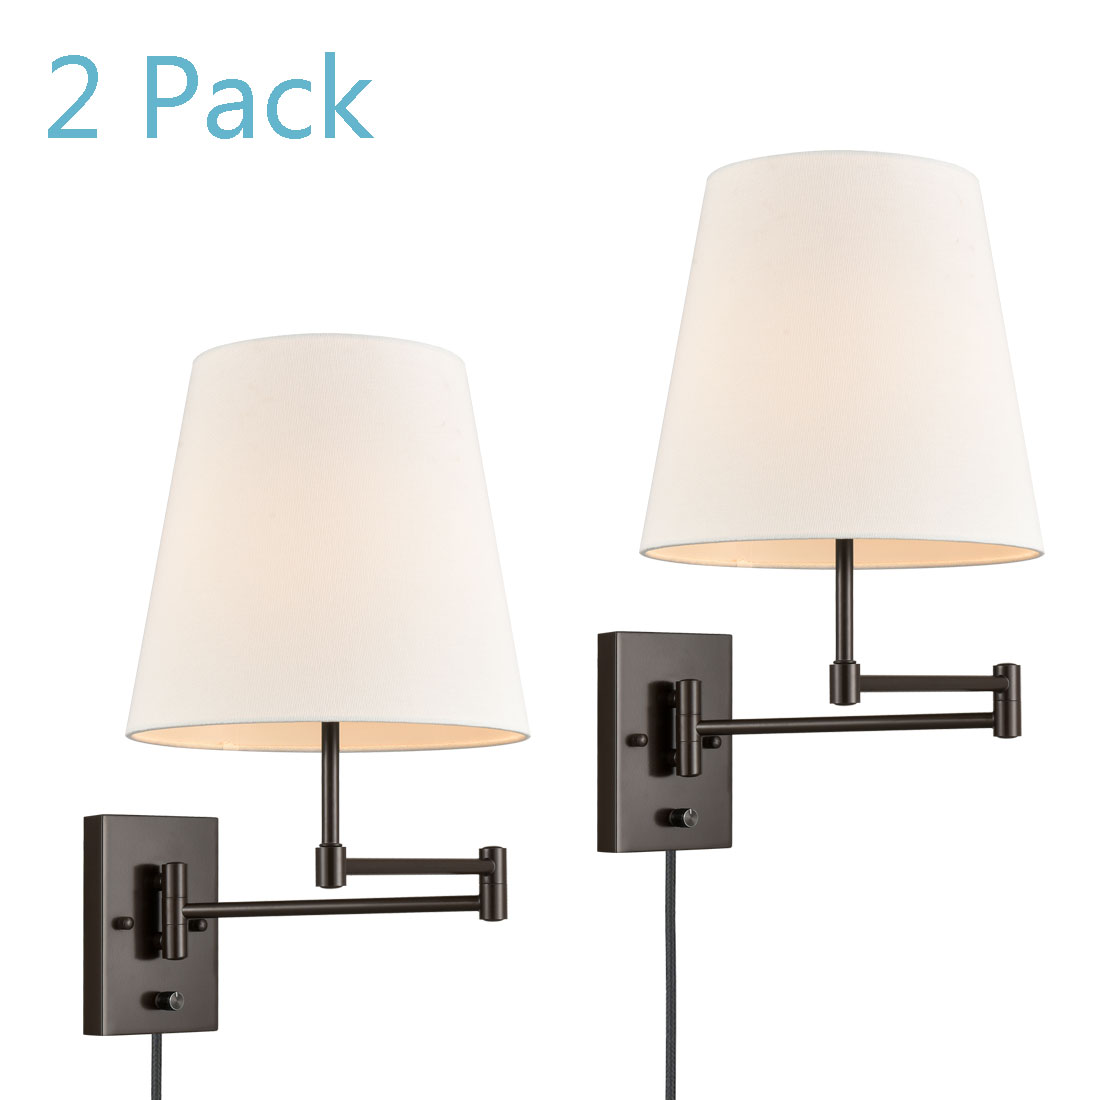 Modern Swing Arm Wall Sconce 10.2Shade Plug-in 2 Pack